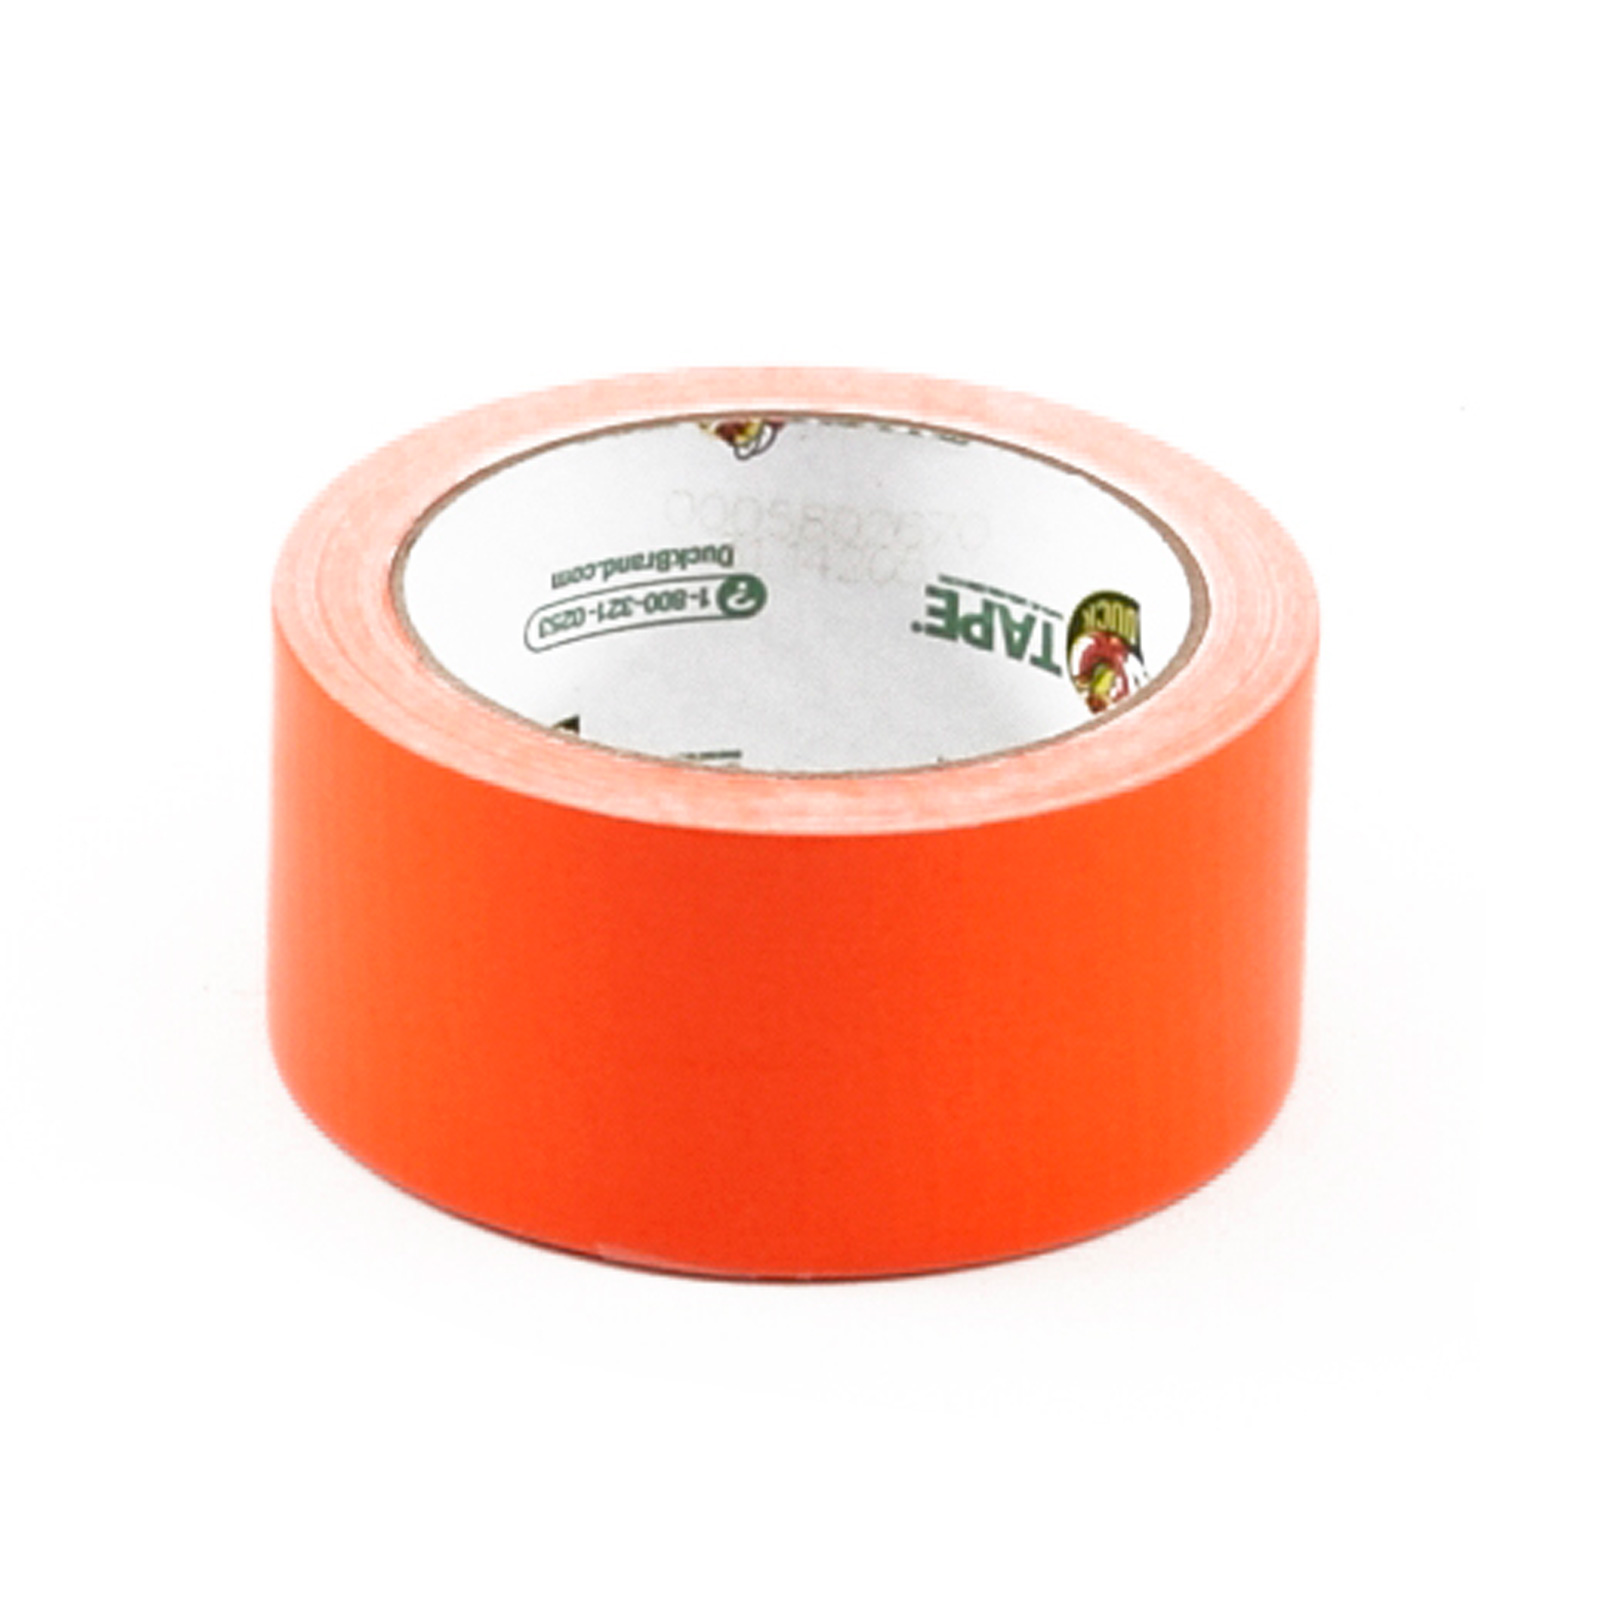 Bright Colored Duck Tape 1.88'' x 15yd-Blaze Orange by Notions Marketing in USA